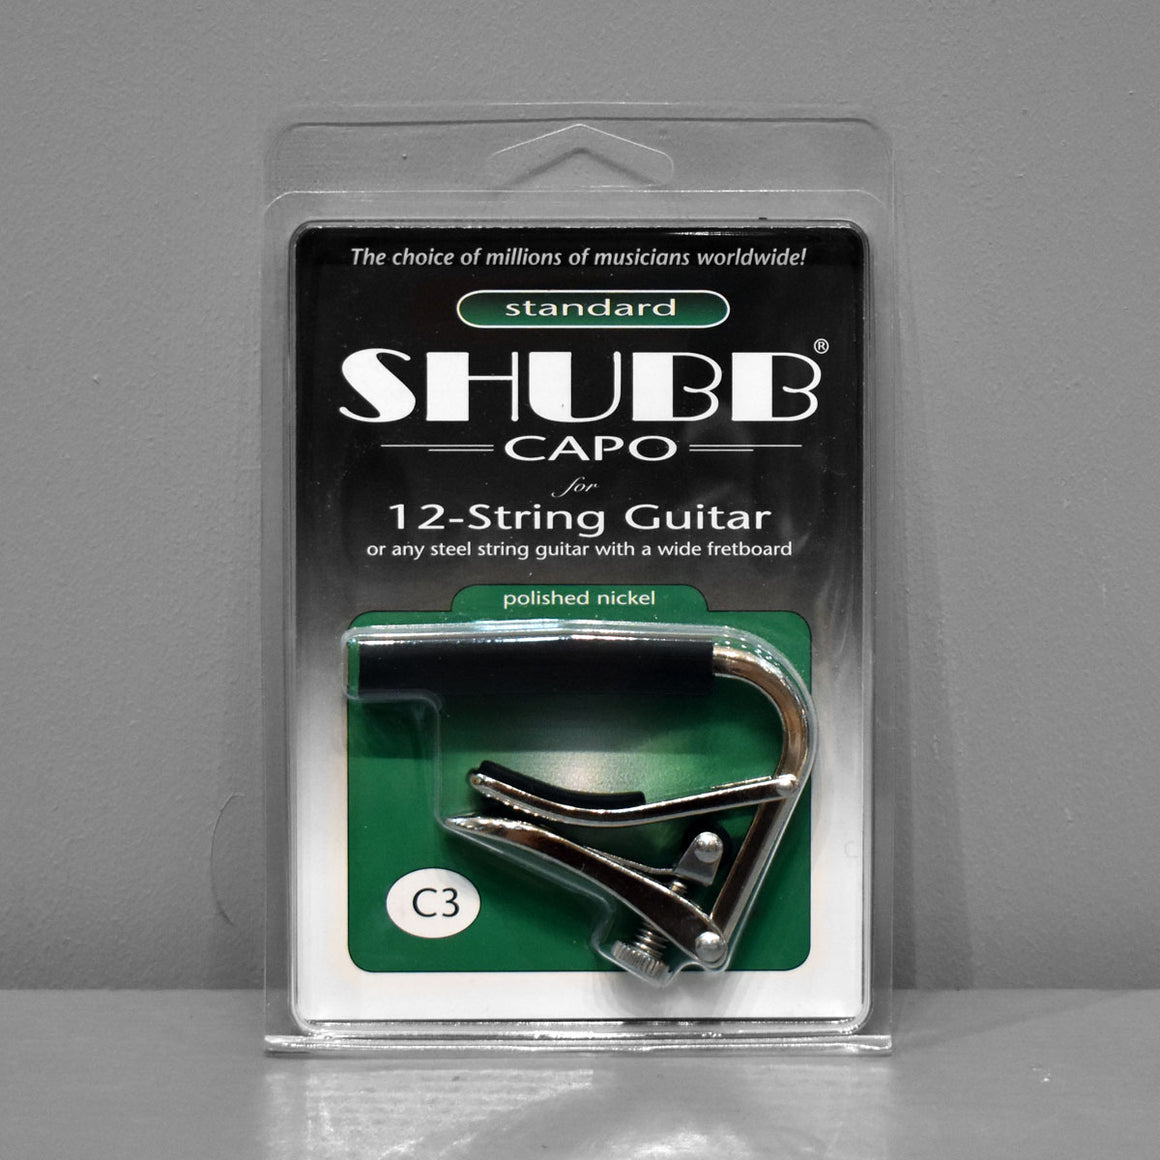 Shubb Capo C3 - 12-String (Polished Nickel)